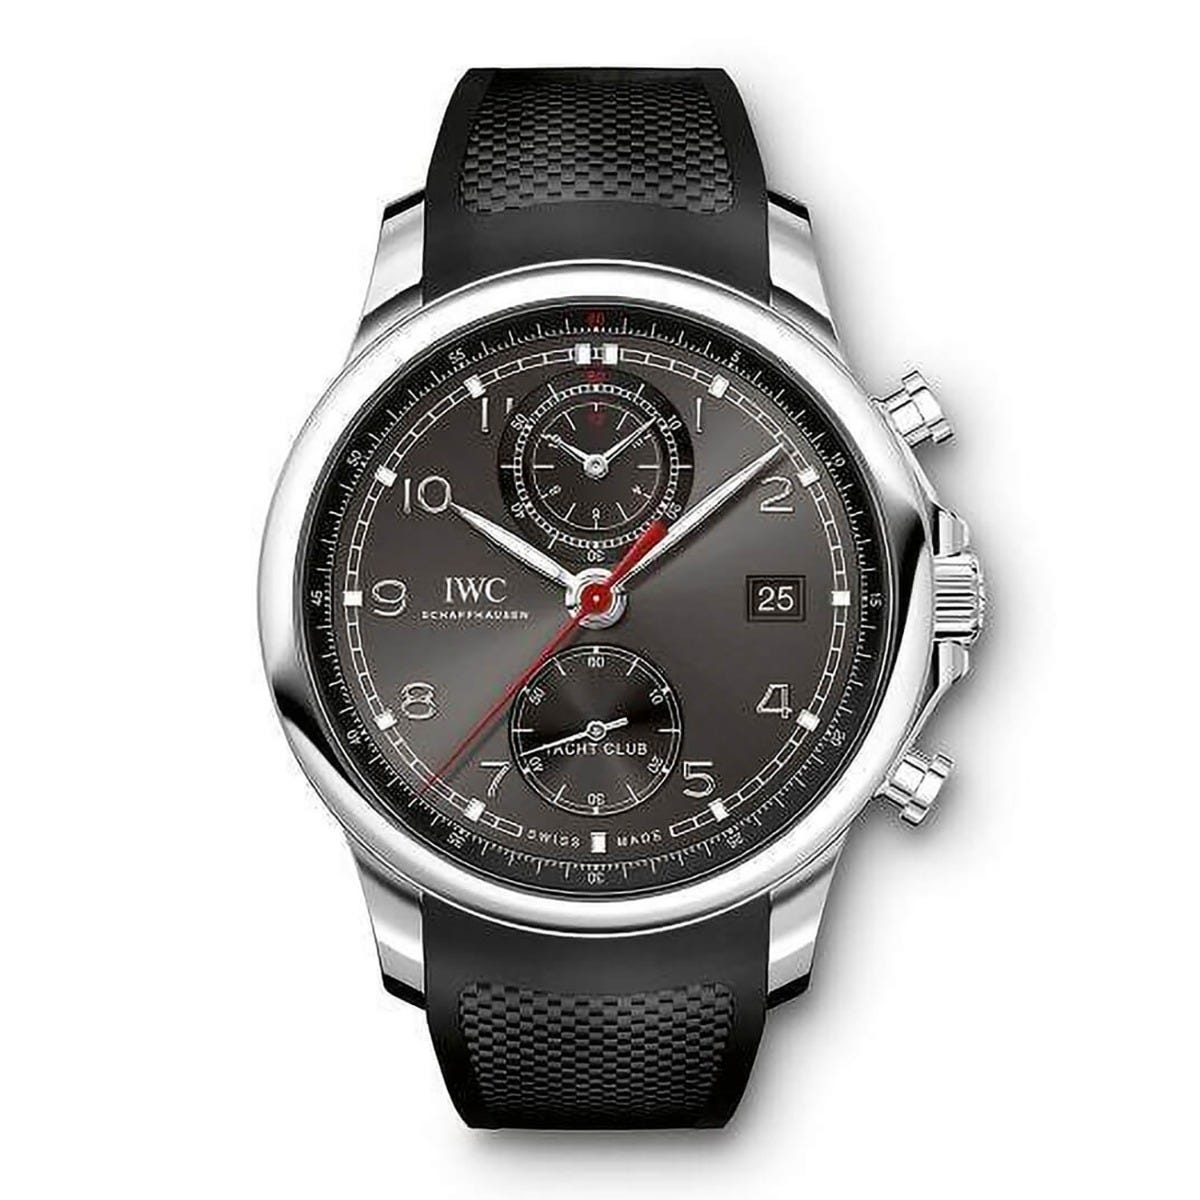 IWC Portugieser Yacht Club men's chronograph rubber strap watch